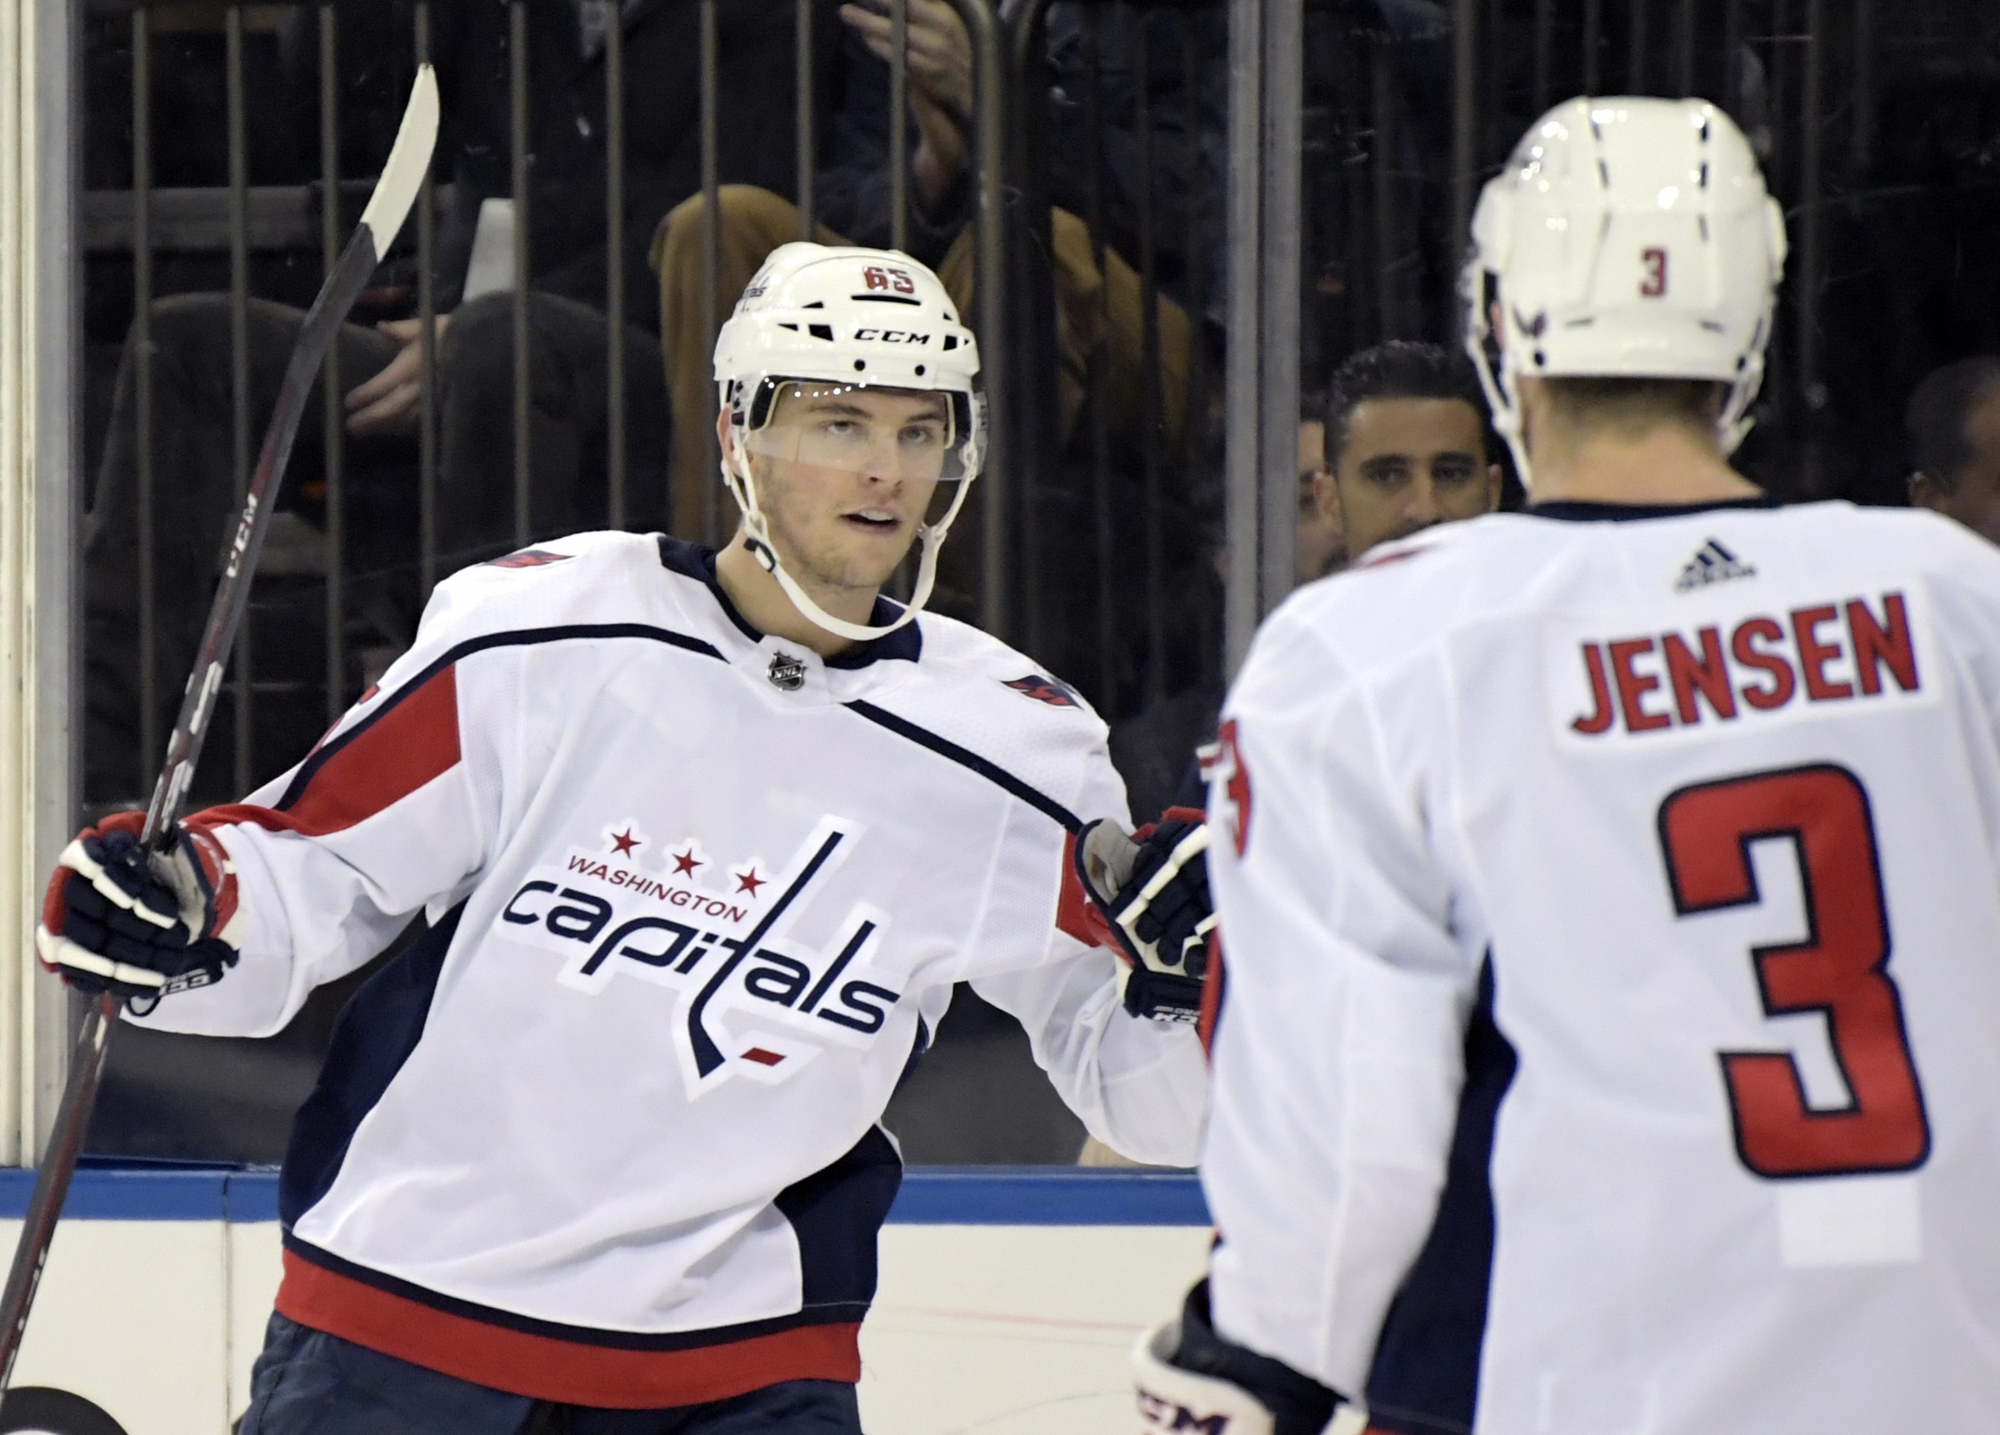 Strange circumstance leads to 3-2 shootout victory for the Caps